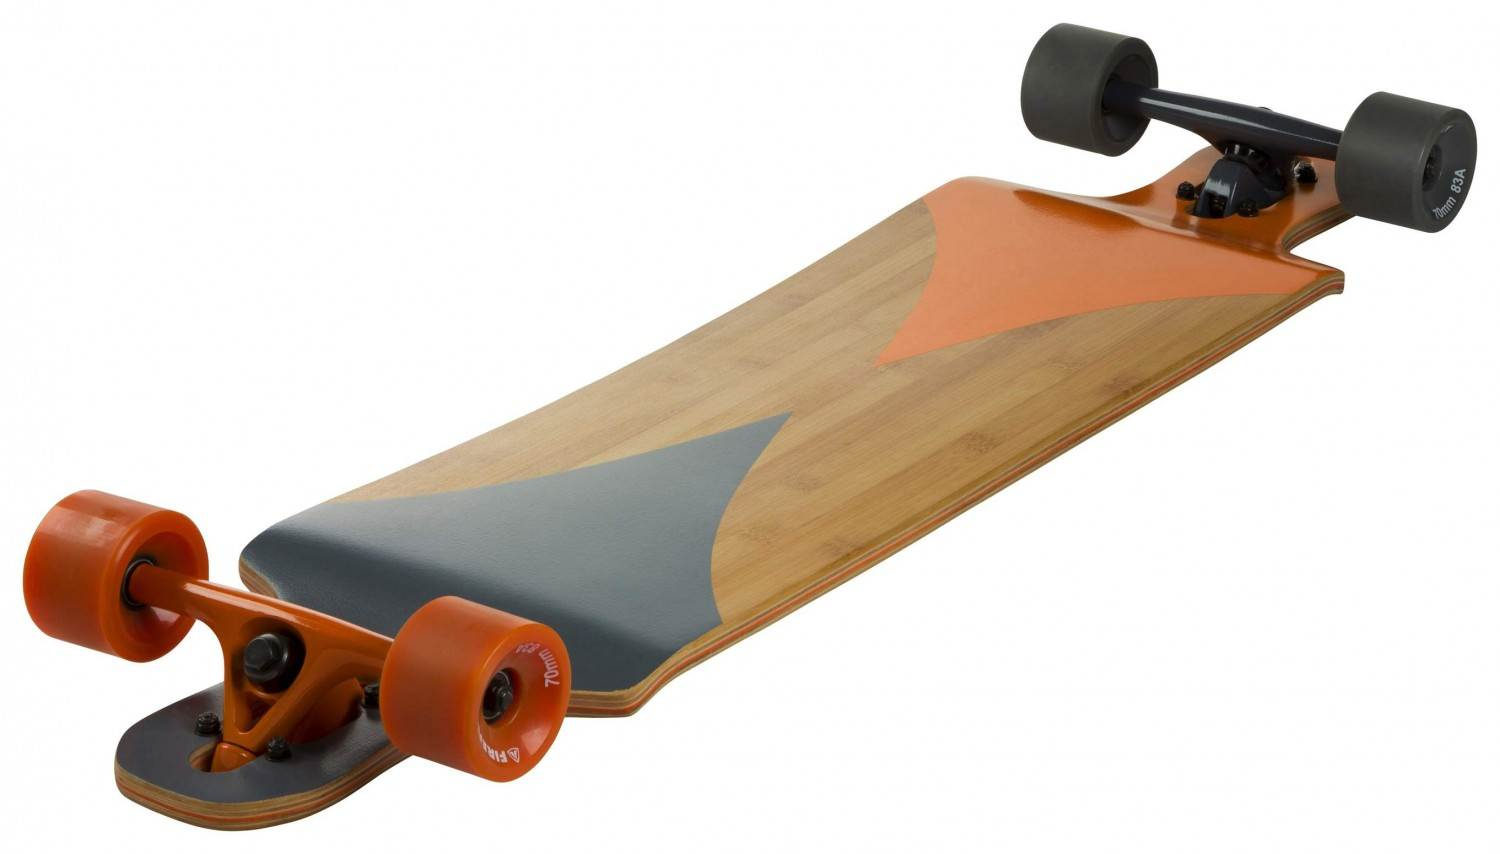 firefly bamboo longboard farbe 900 grau orange bamboo. Black Bedroom Furniture Sets. Home Design Ideas